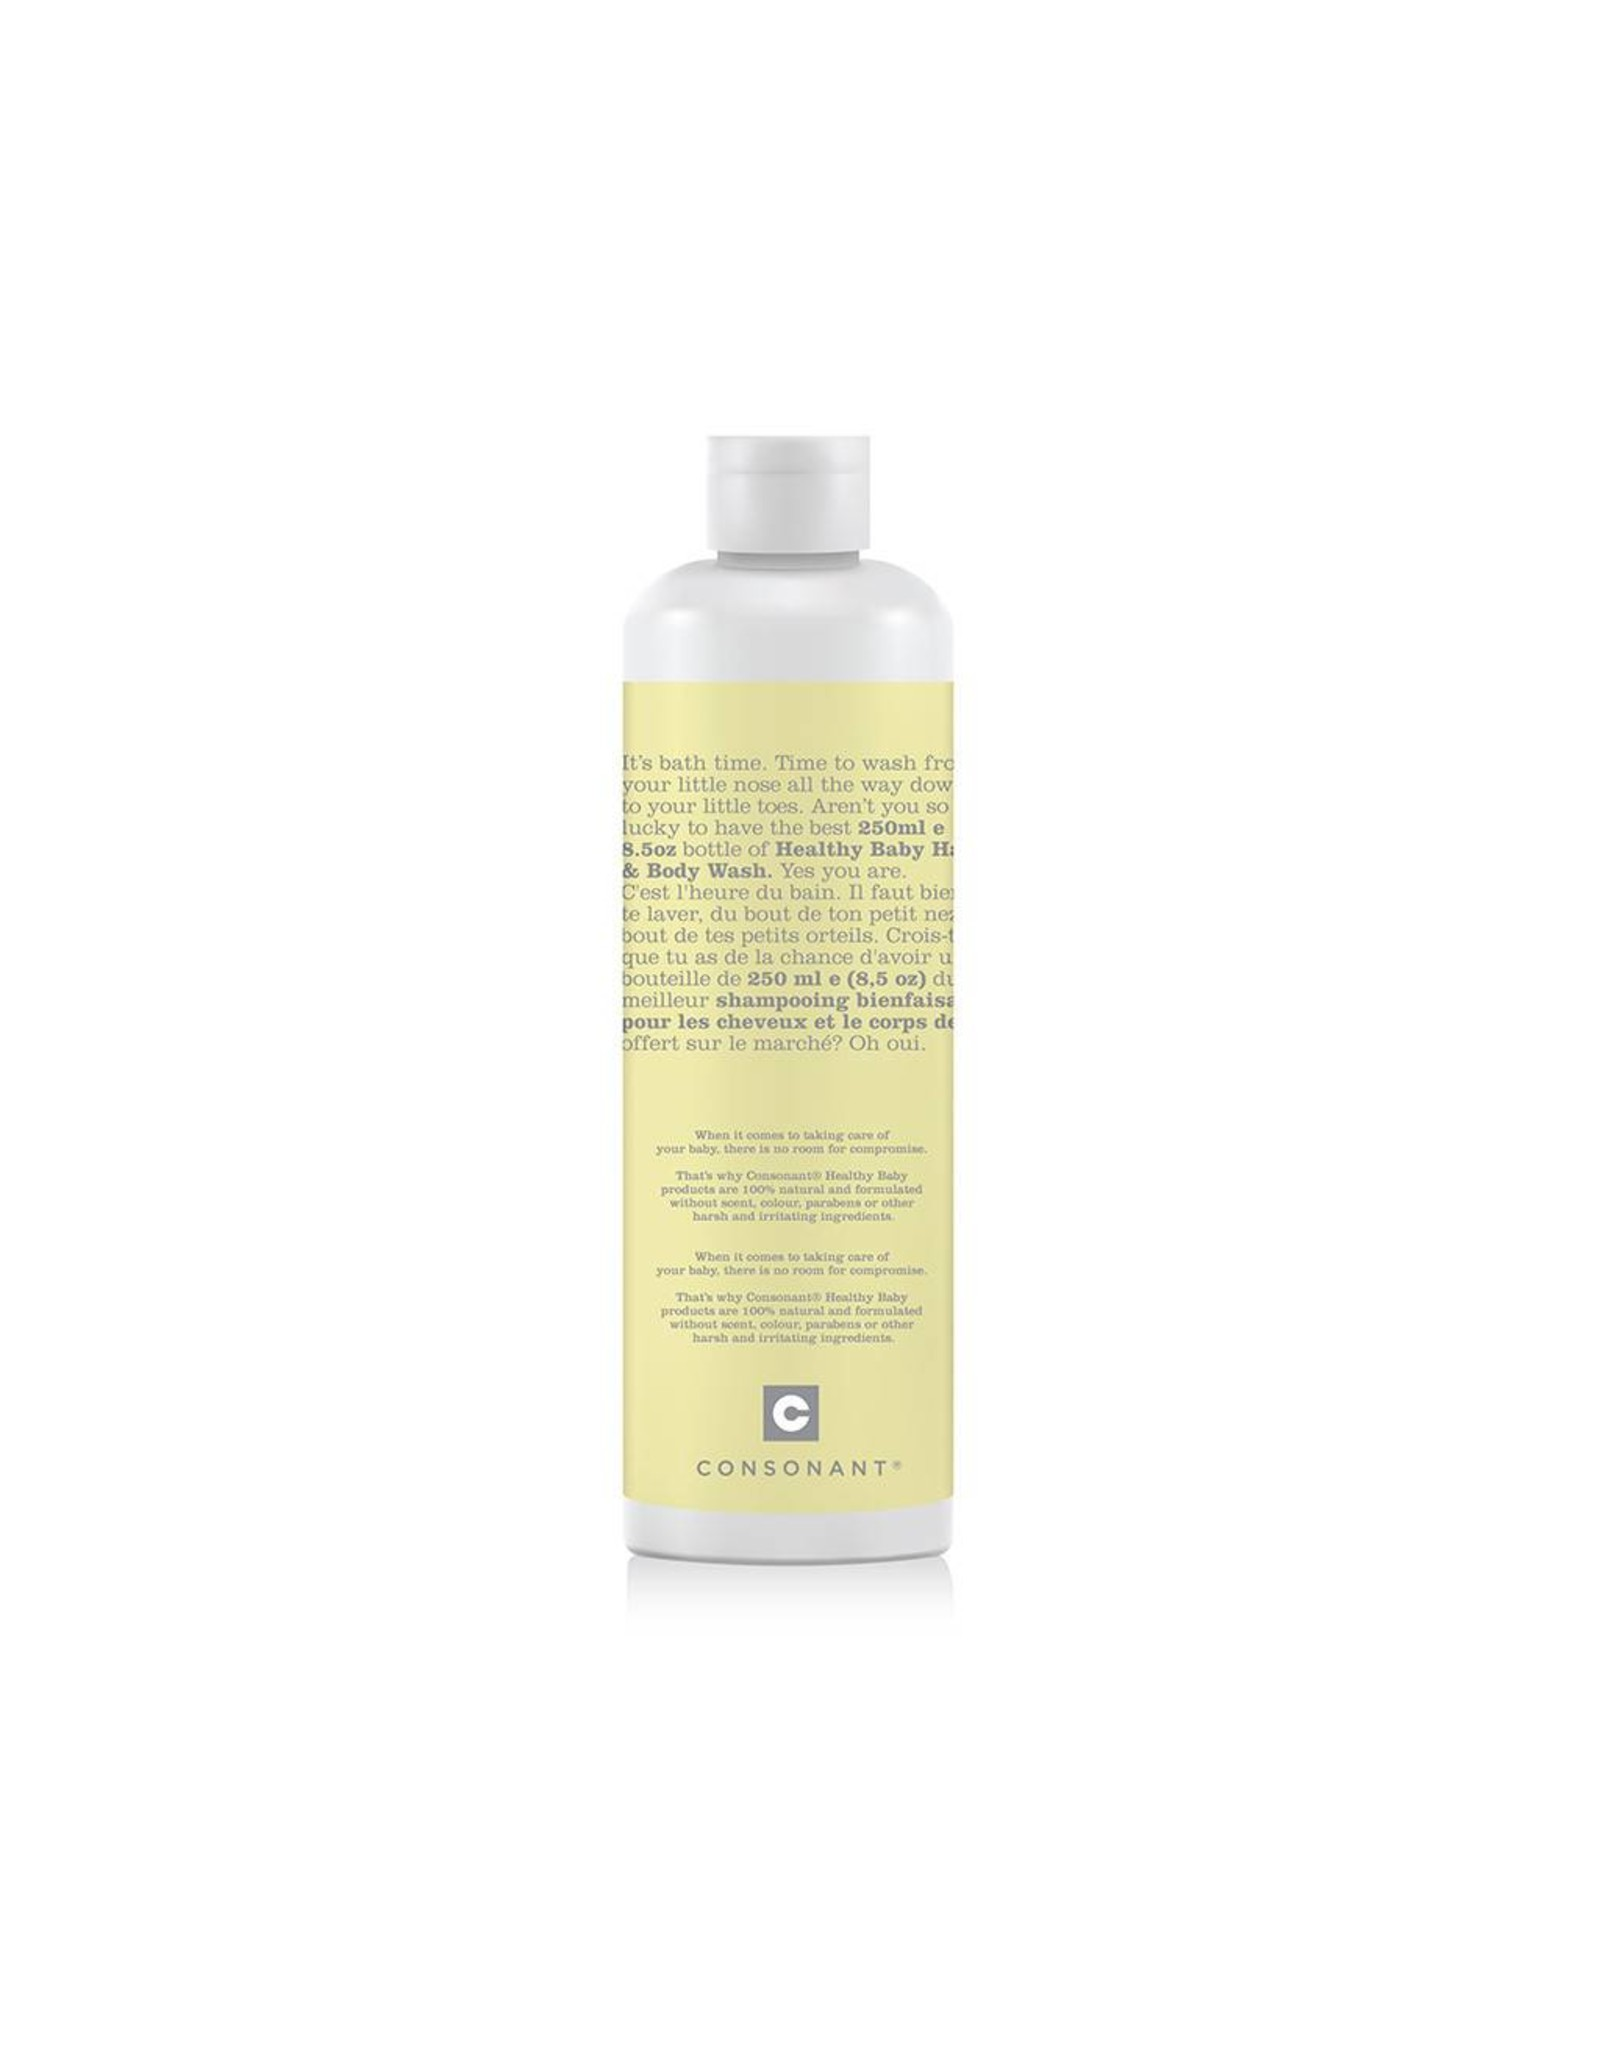 Consonant Healthy Baby Hair & Body Wash